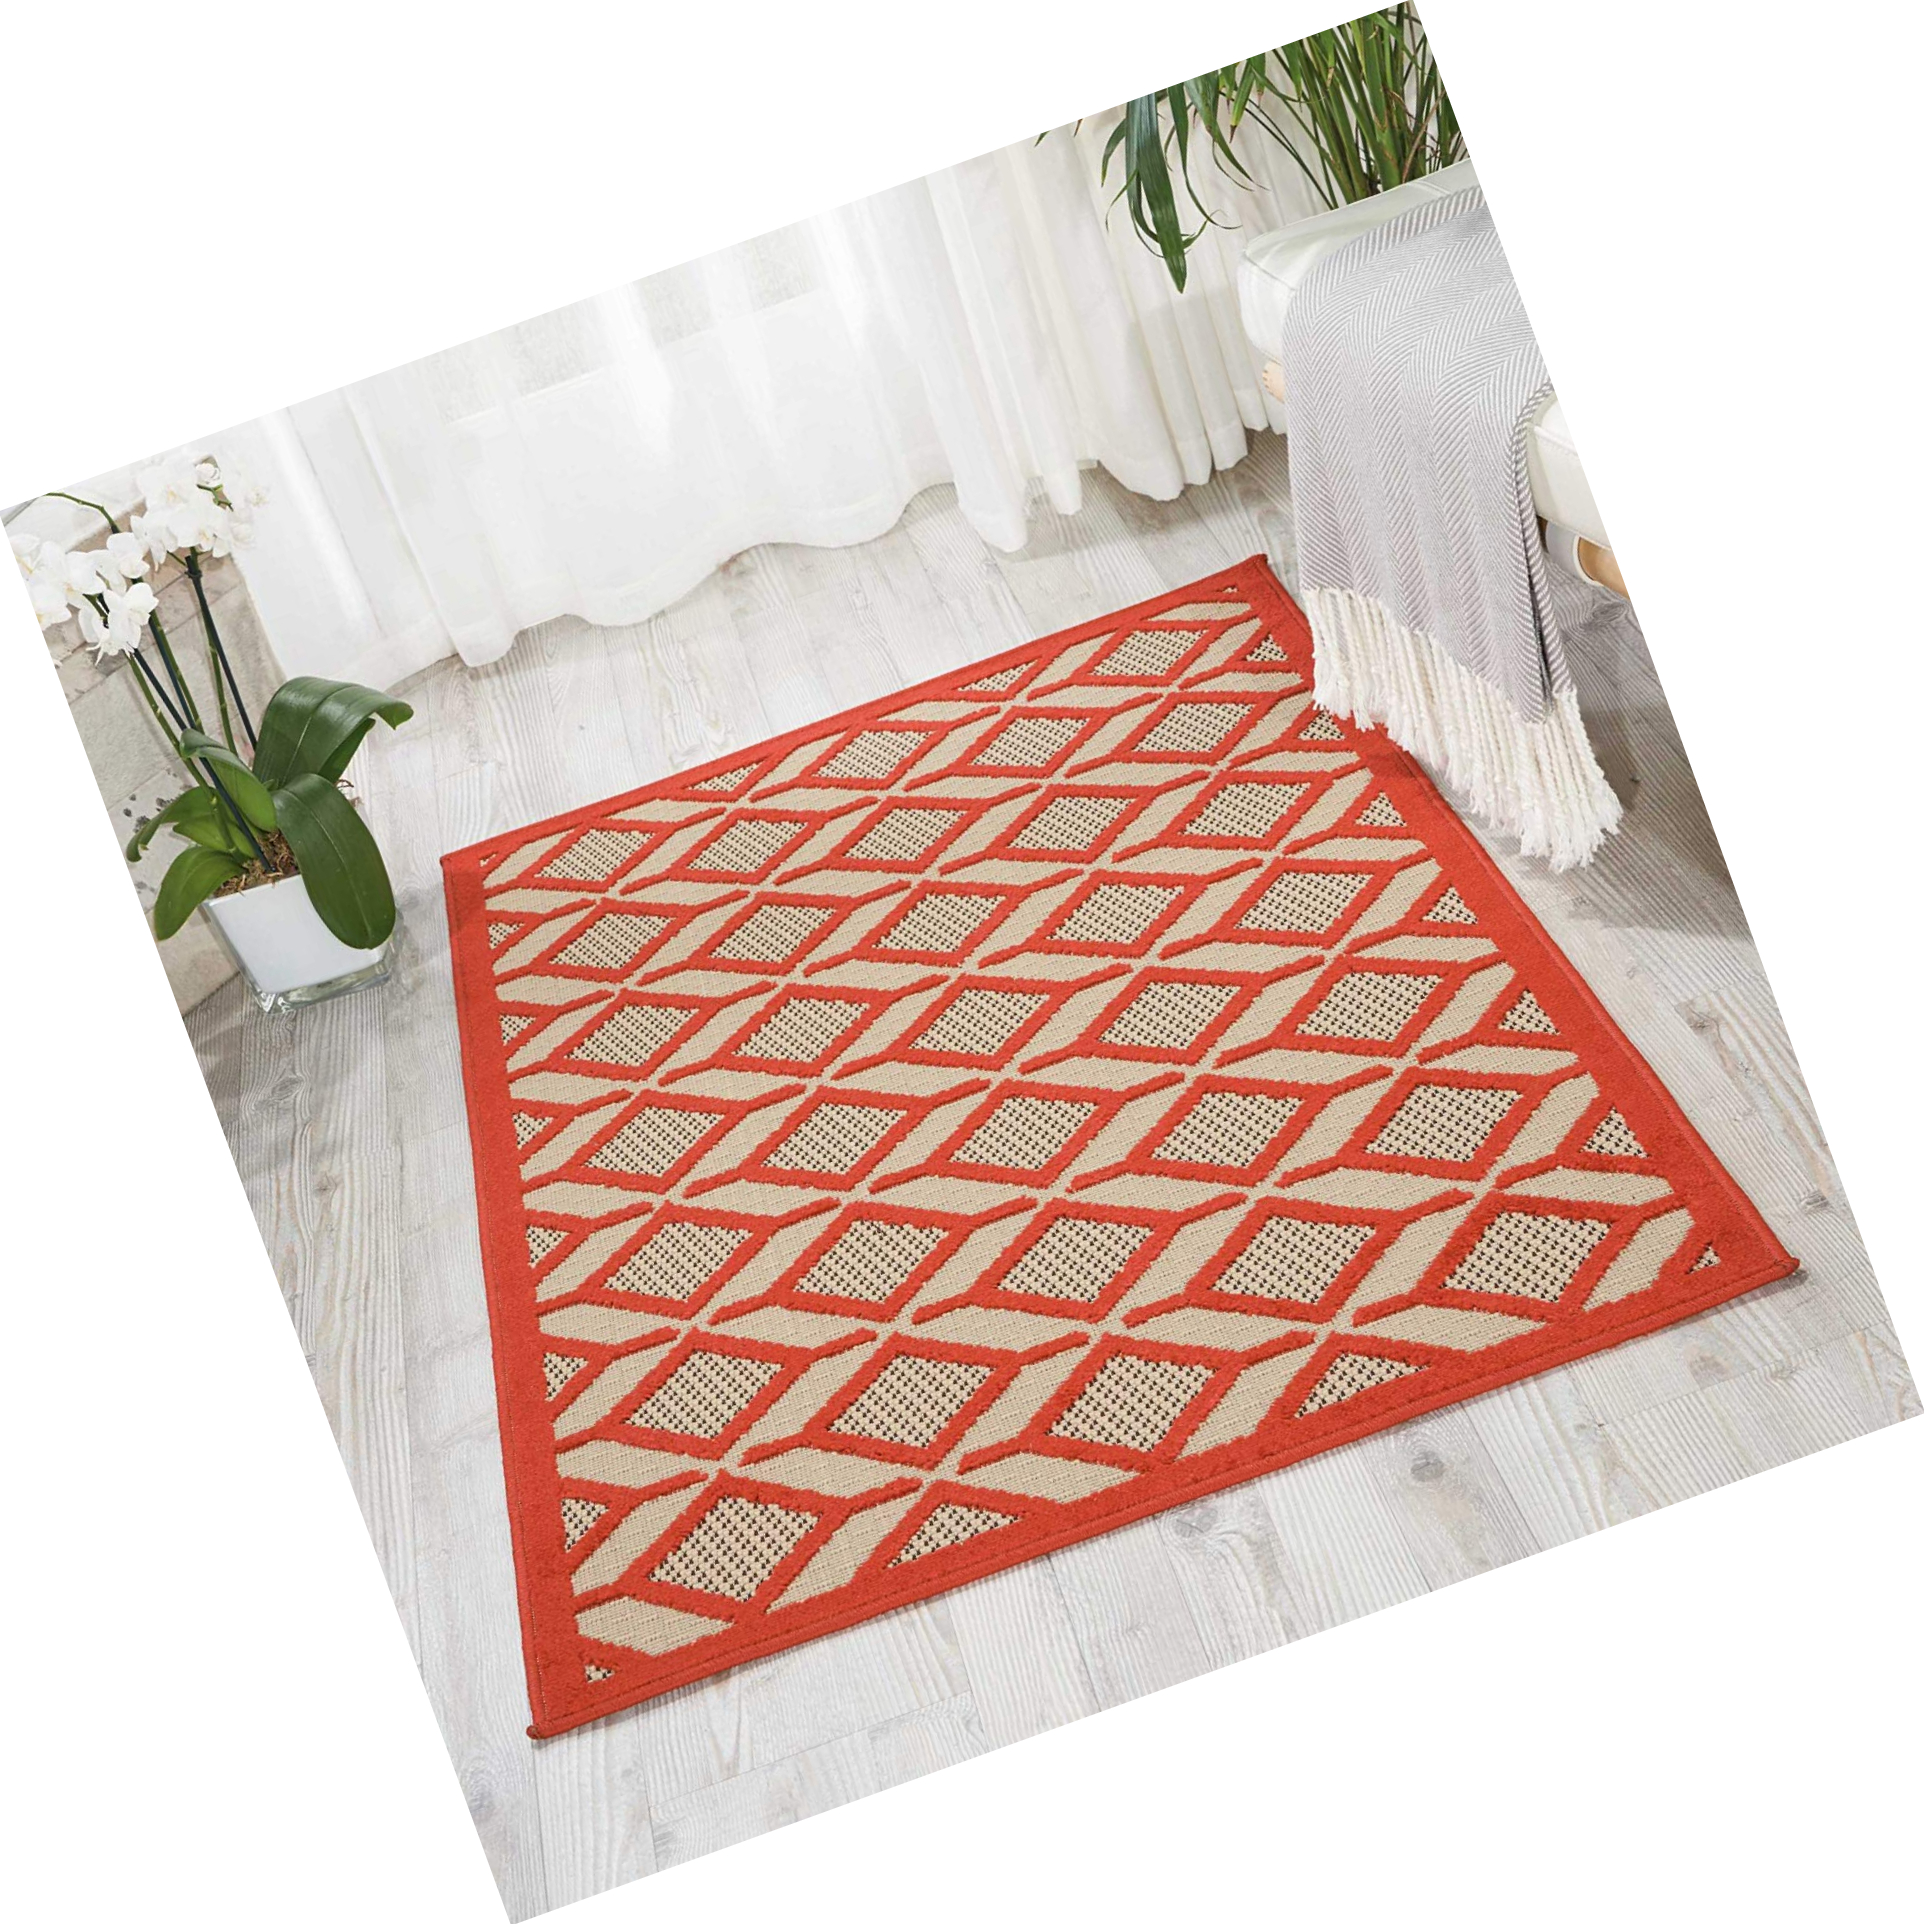 Details About Nourison Alh03 Aloha Red Indoor Outdoor Area Rug 2 8 X 4